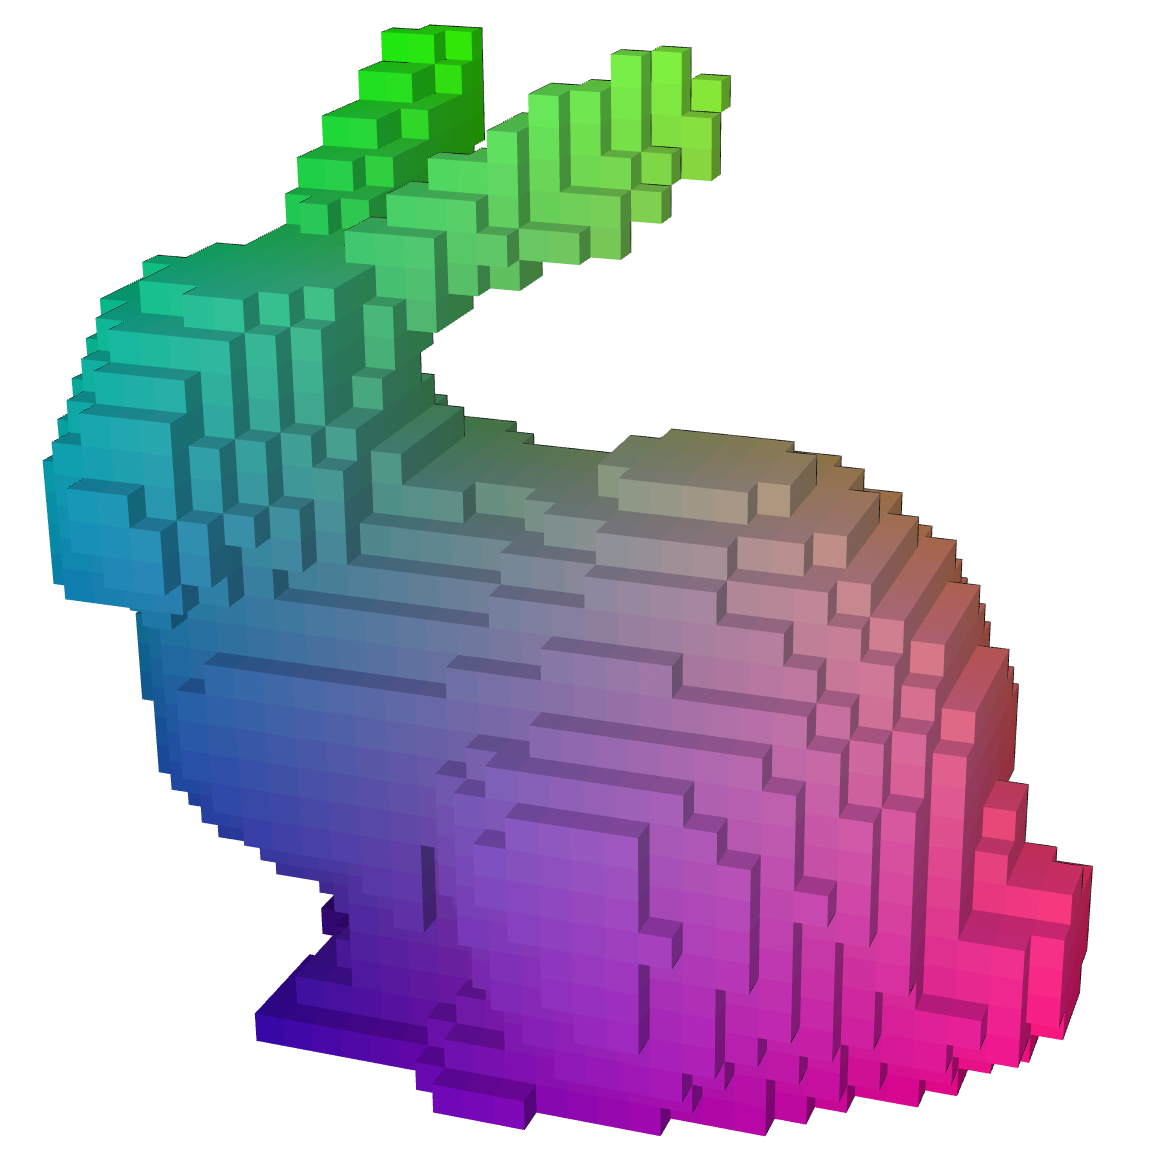 voxel_bunny_32.png